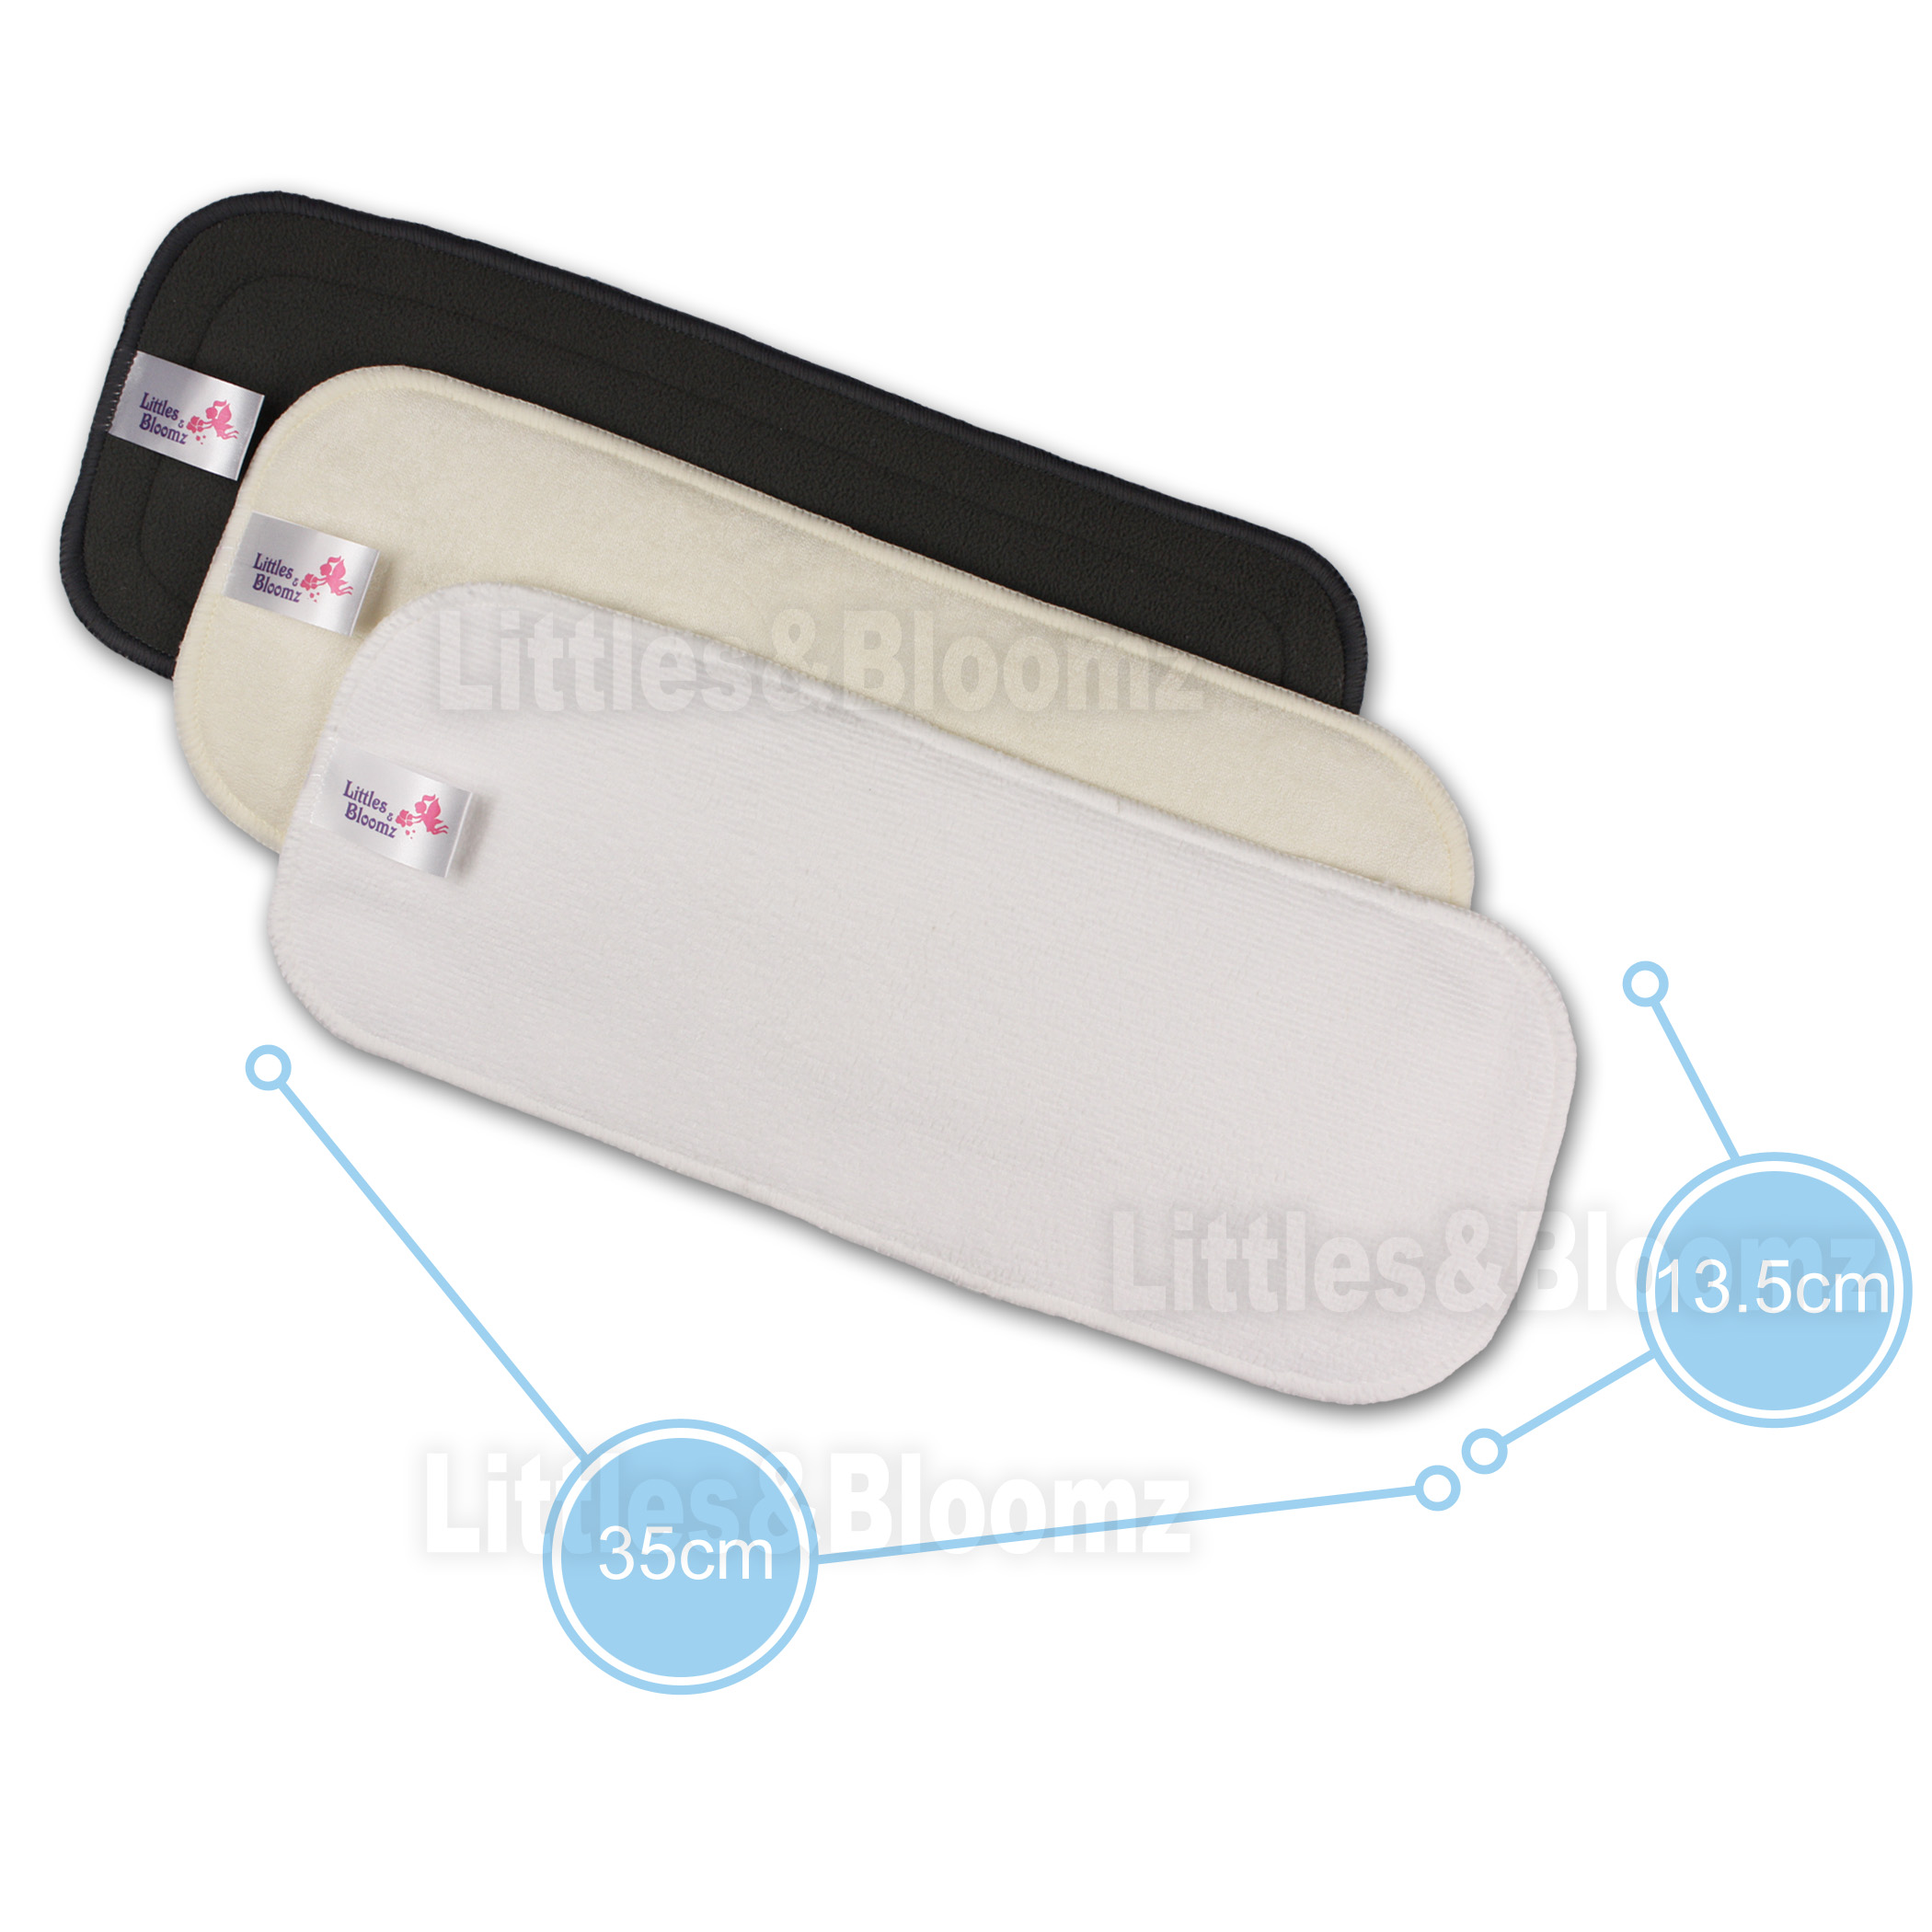 \PromoteWashable-Inserts Boosters-Liners Cloth Nappy Pocket Bamboo-Charcoal Diaper-Microfibre